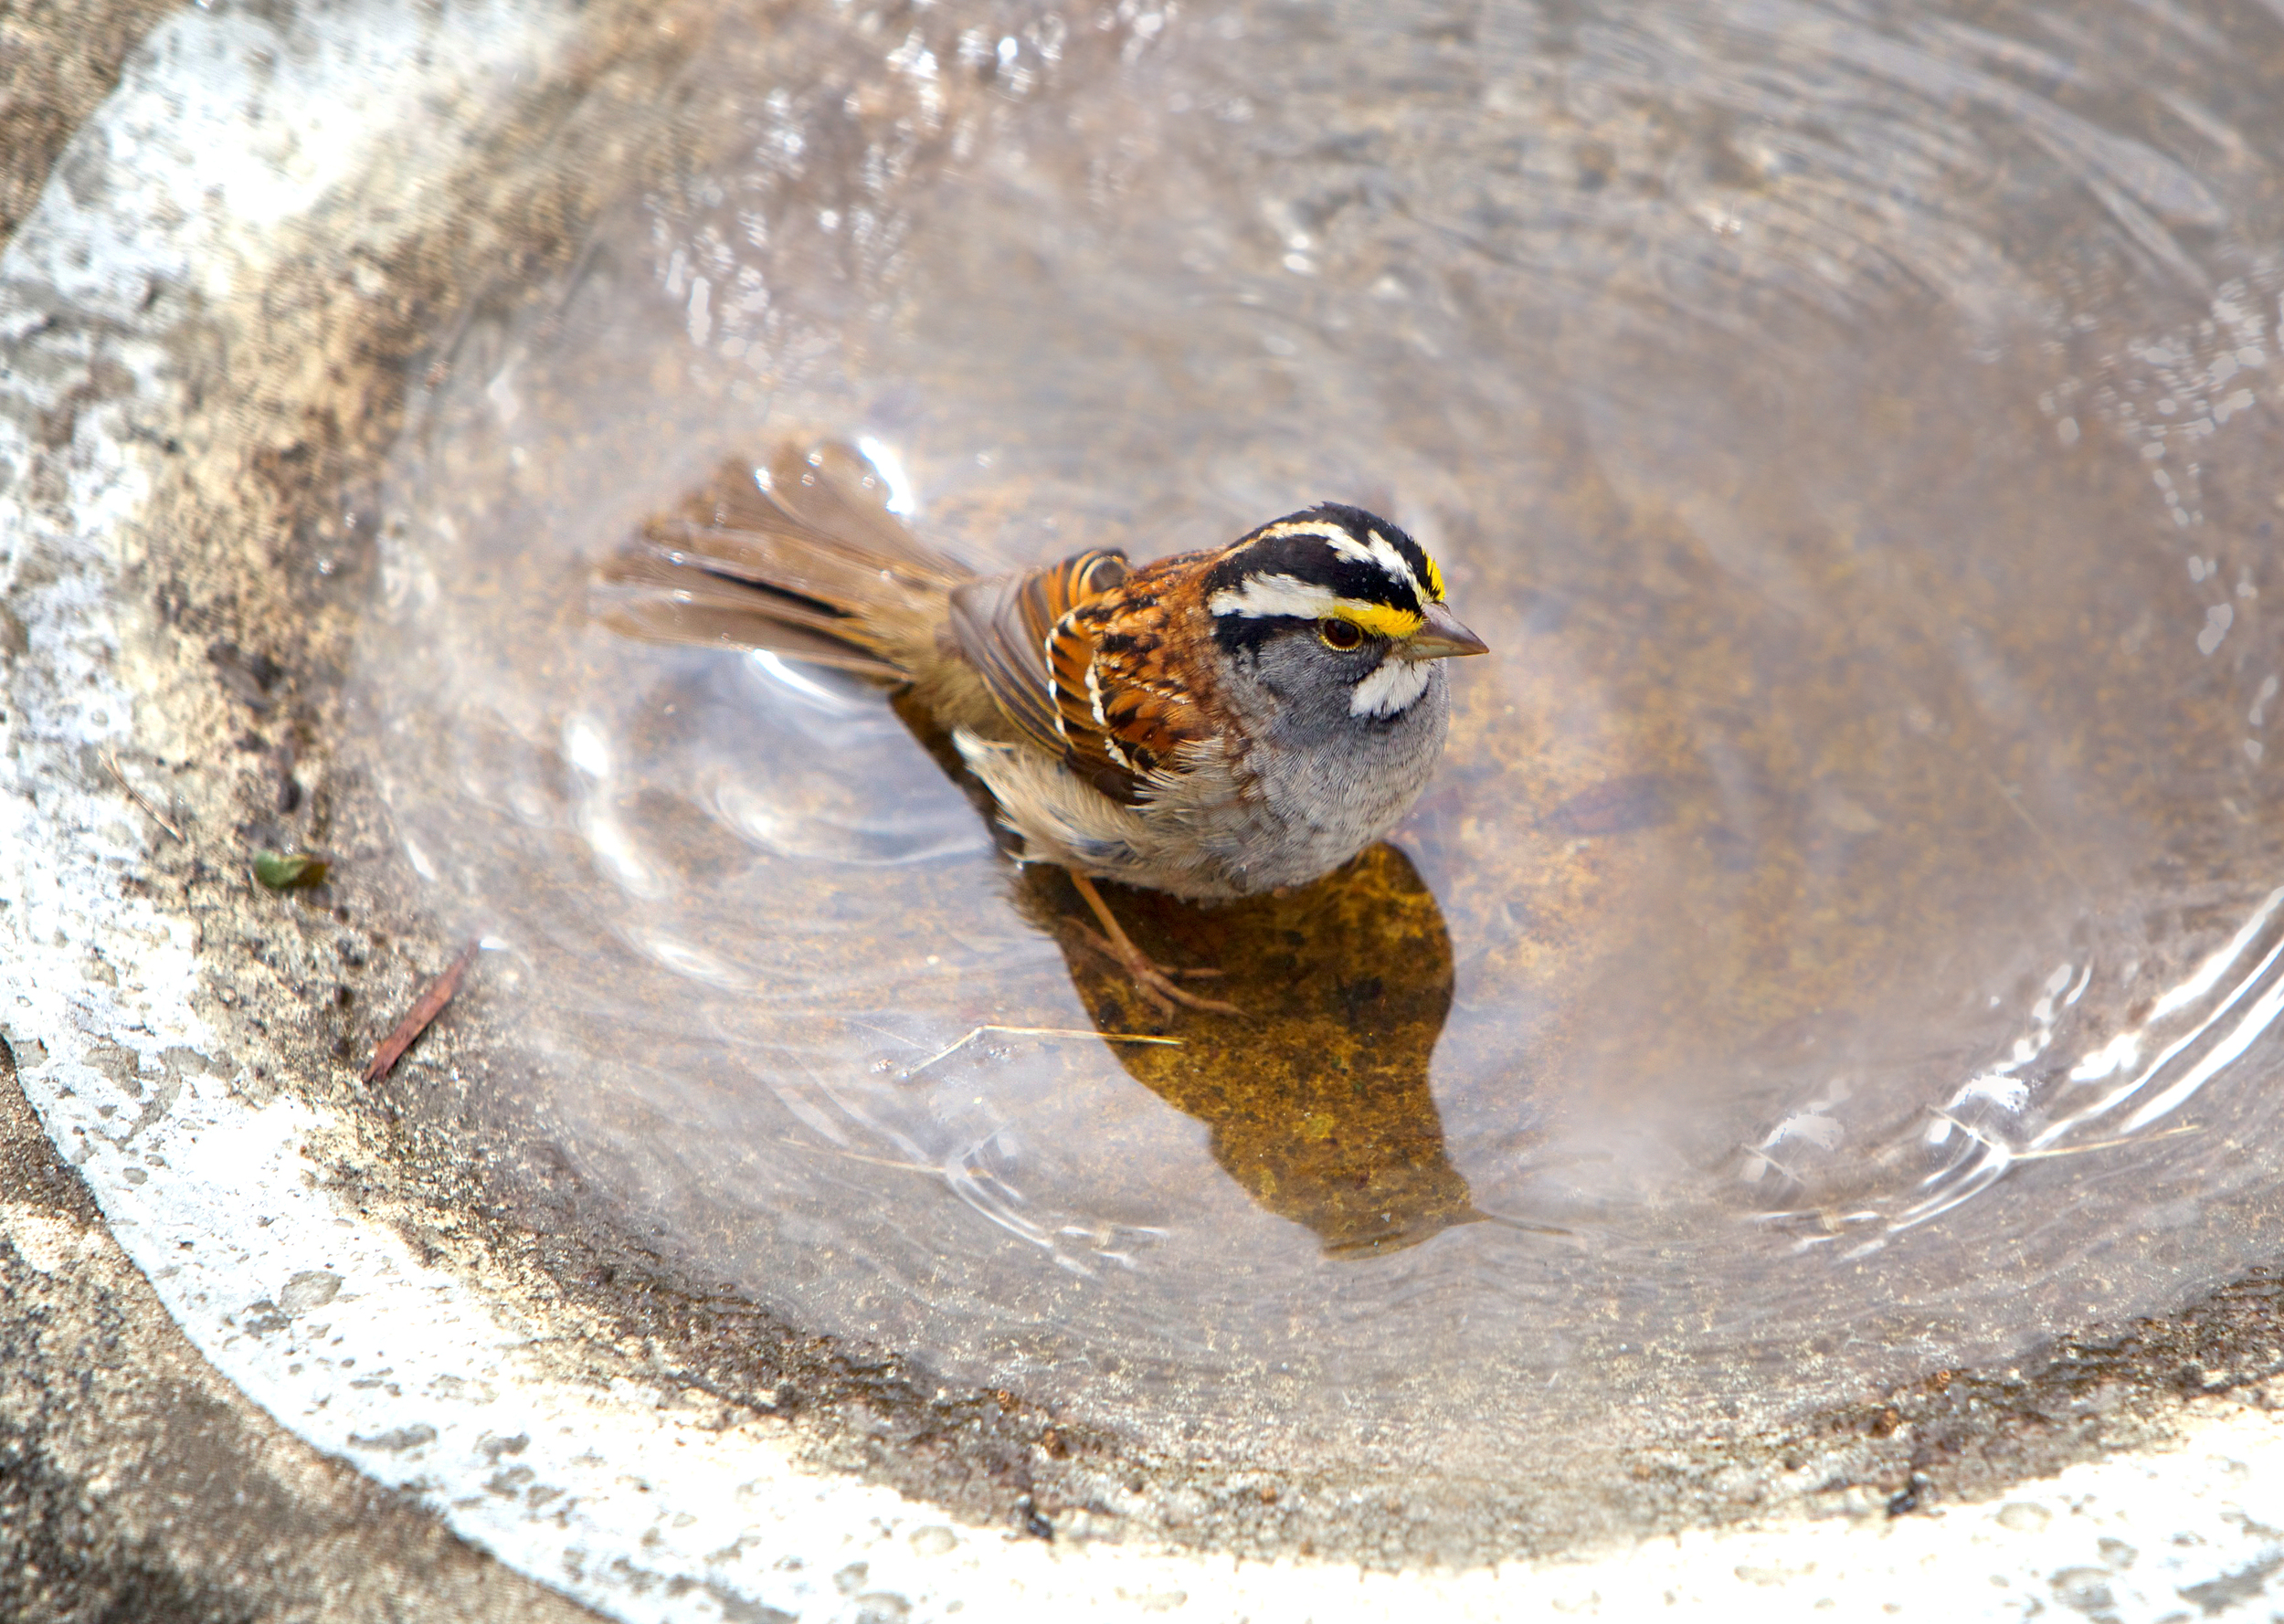 Sweet White-throated Sparrow on a cold spring day. If you look closely, His shadow resembles a hummingbird.